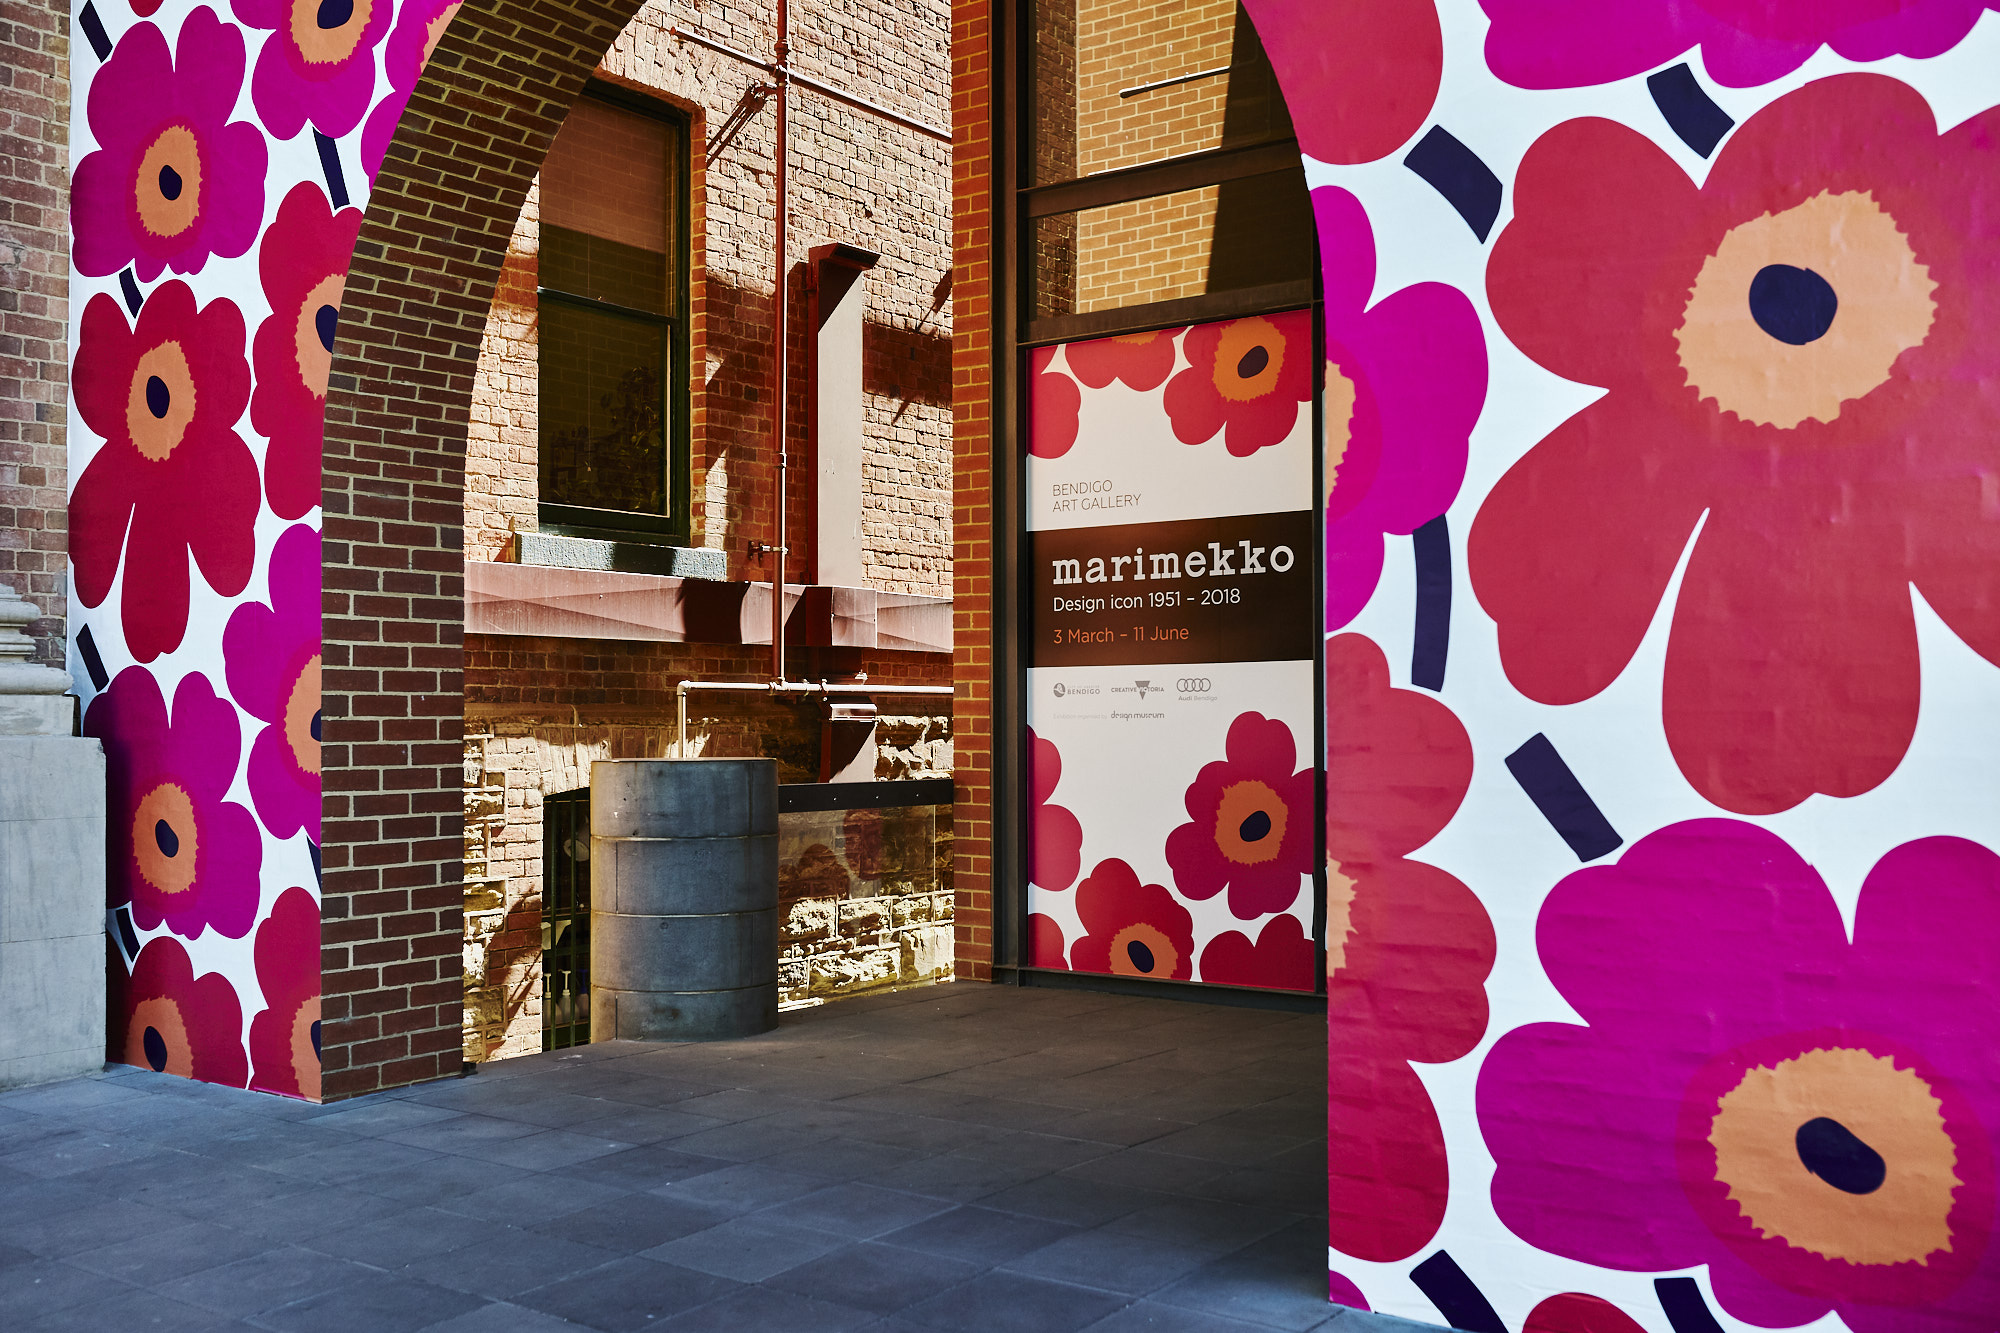 Marimekko: Design Icon 1951 to 2018, Bendigo Art Gallery